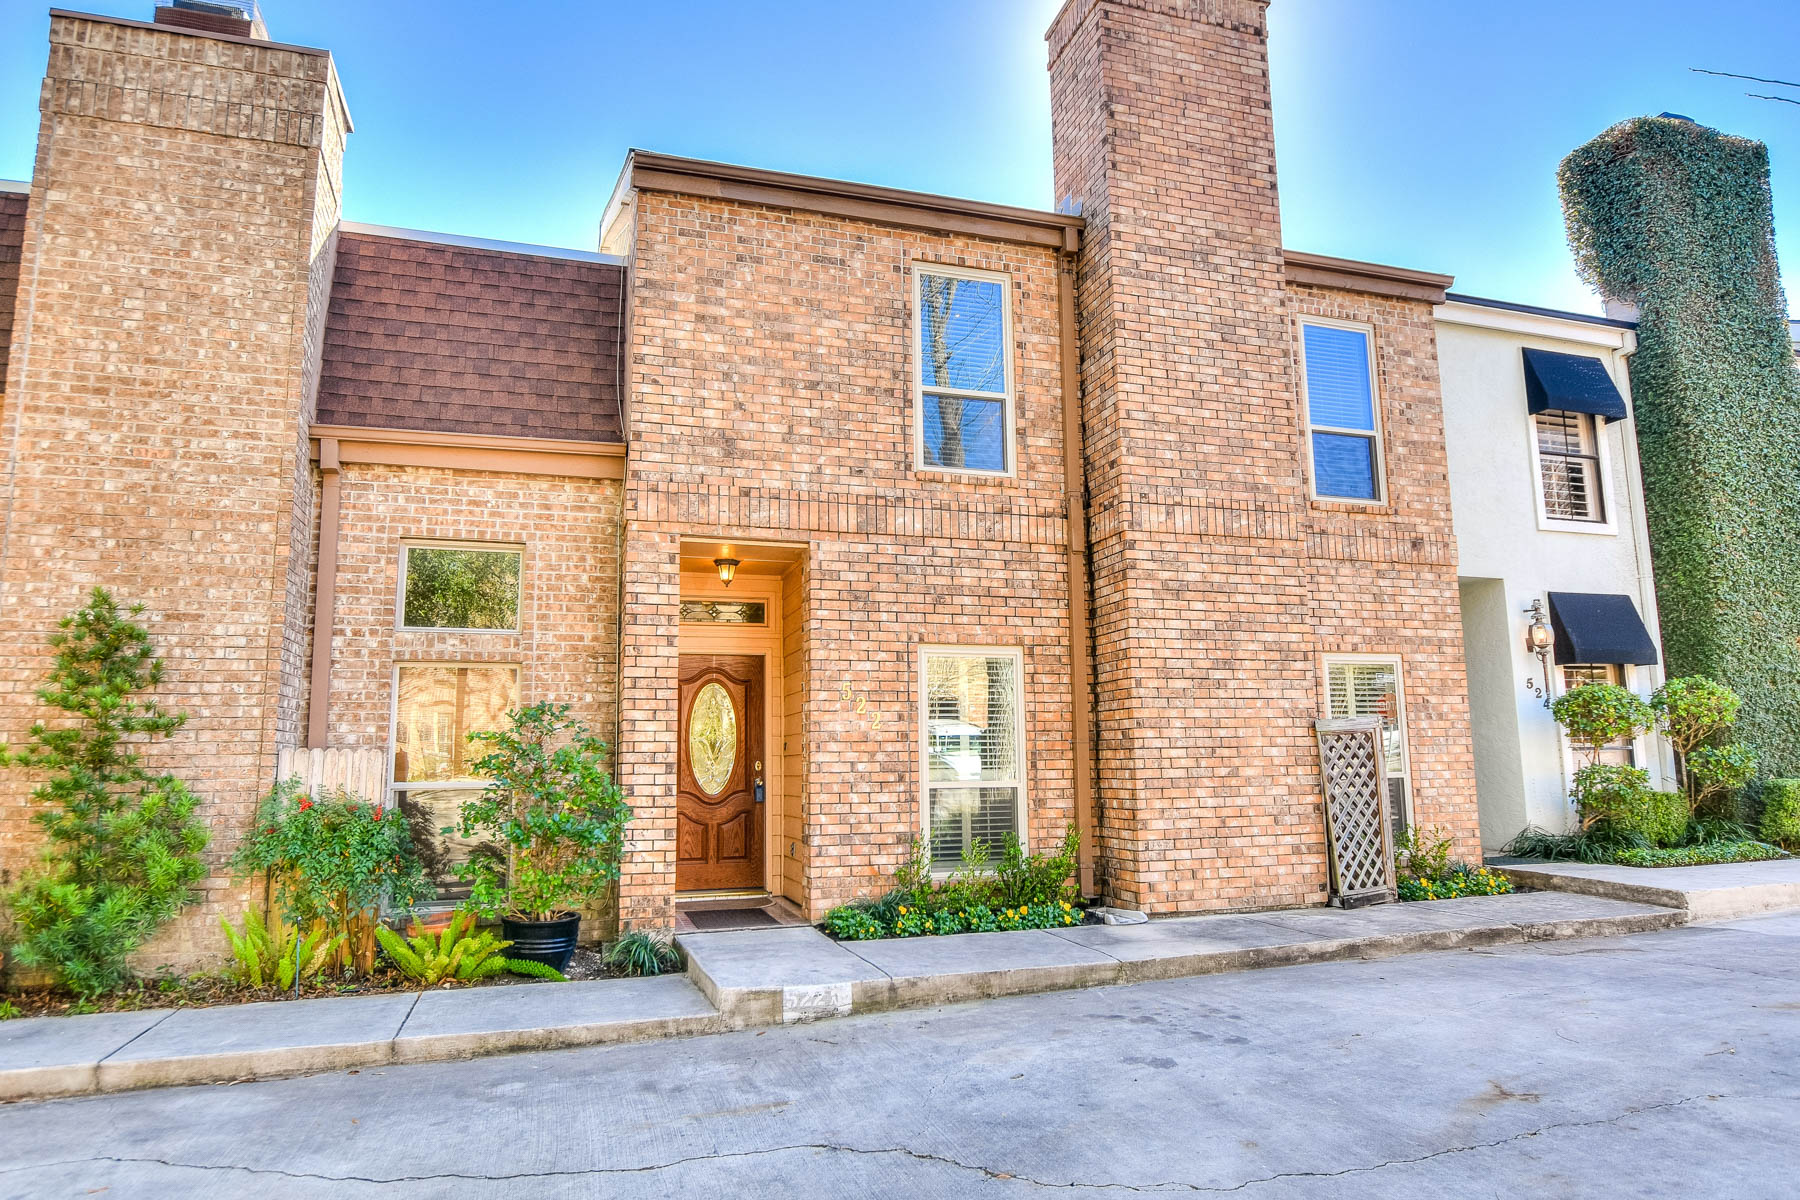 Townhouse for Sale at Townhome in Coveted Olmos Park 522 Thelma Dr San Antonio, Texas 78212 United States